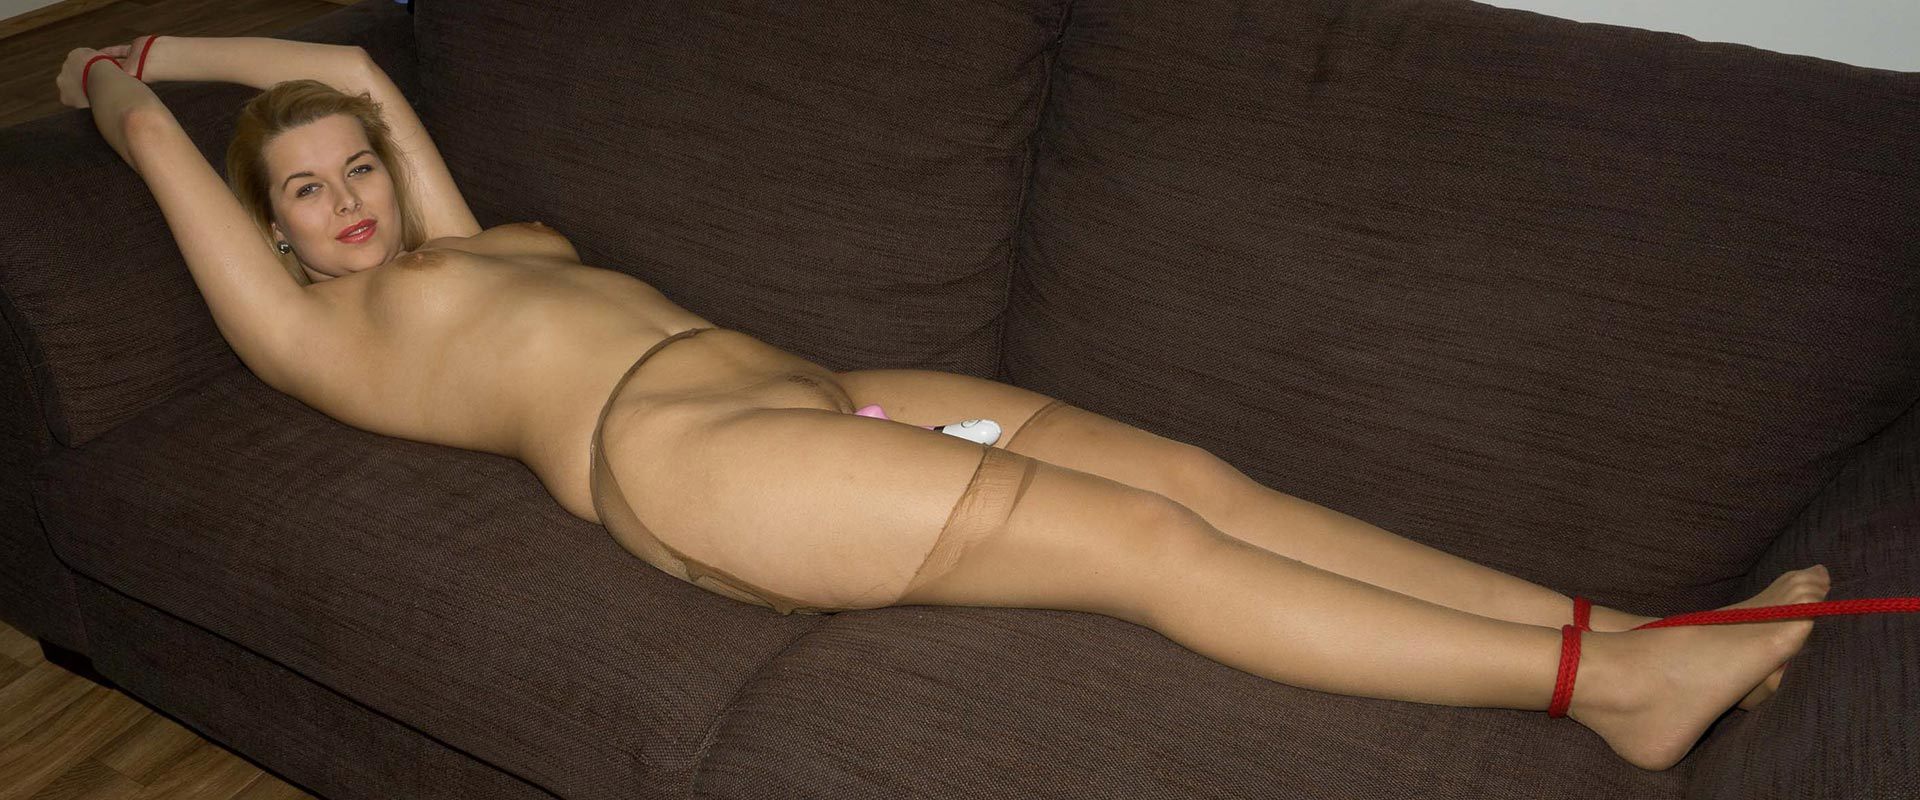 Adult s live pantyhose video chat